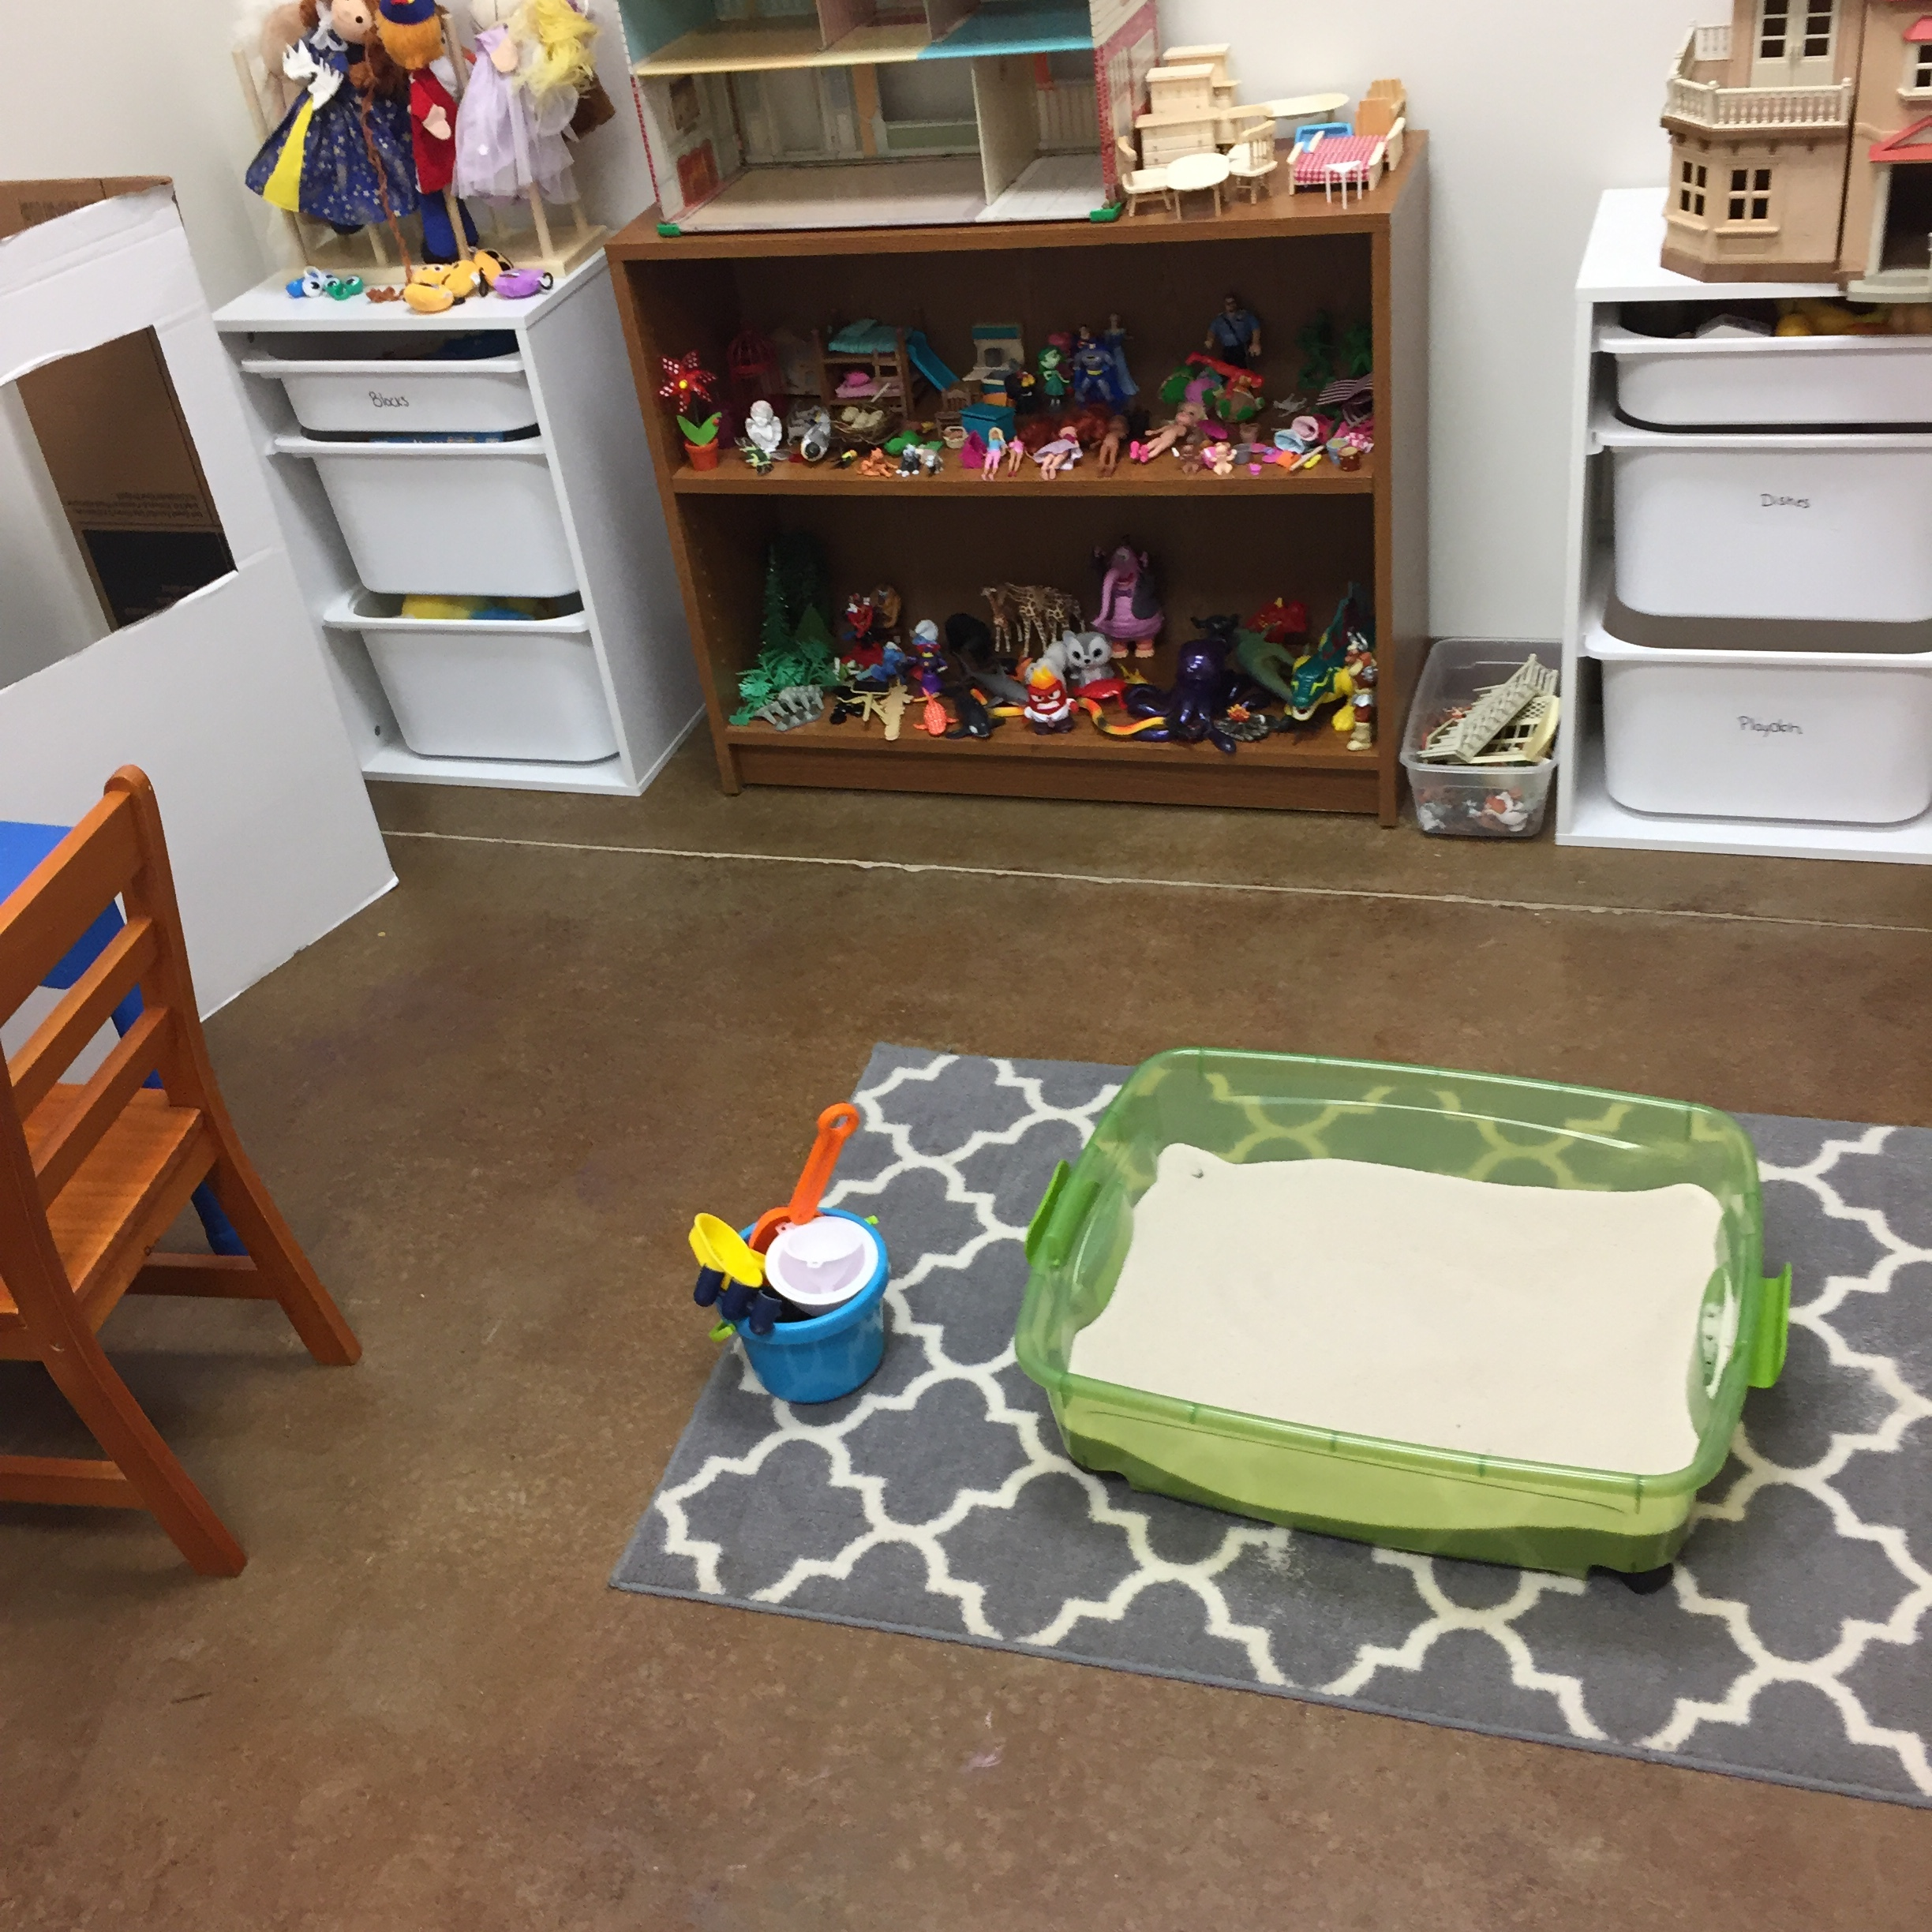 My Playroom is a special place for your child.